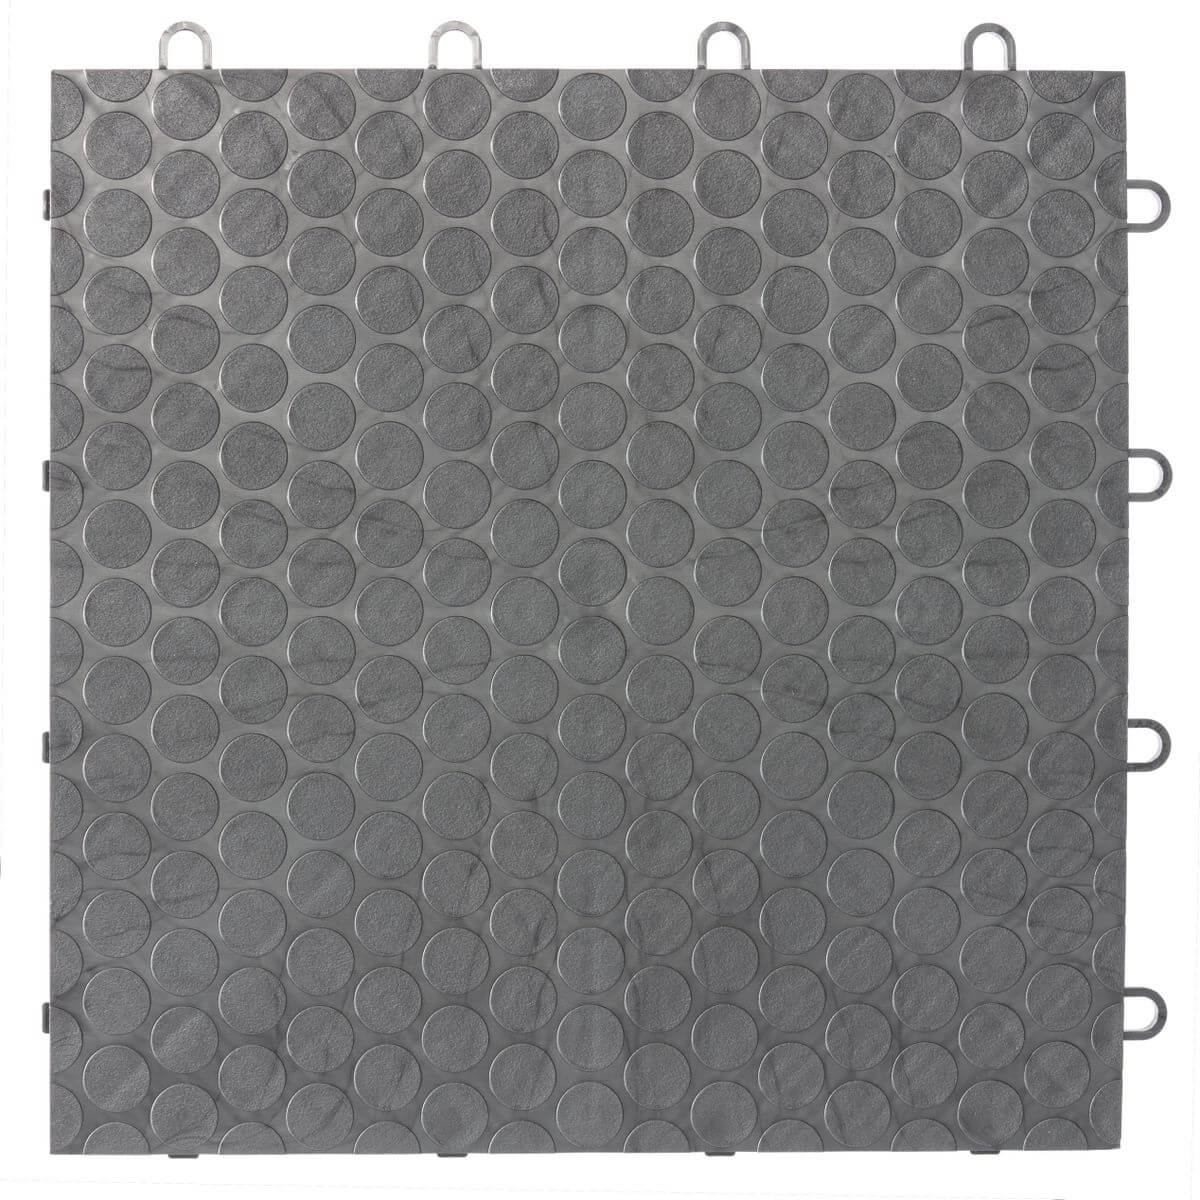 HD Extreme Coin Tile -- Graphite Gray